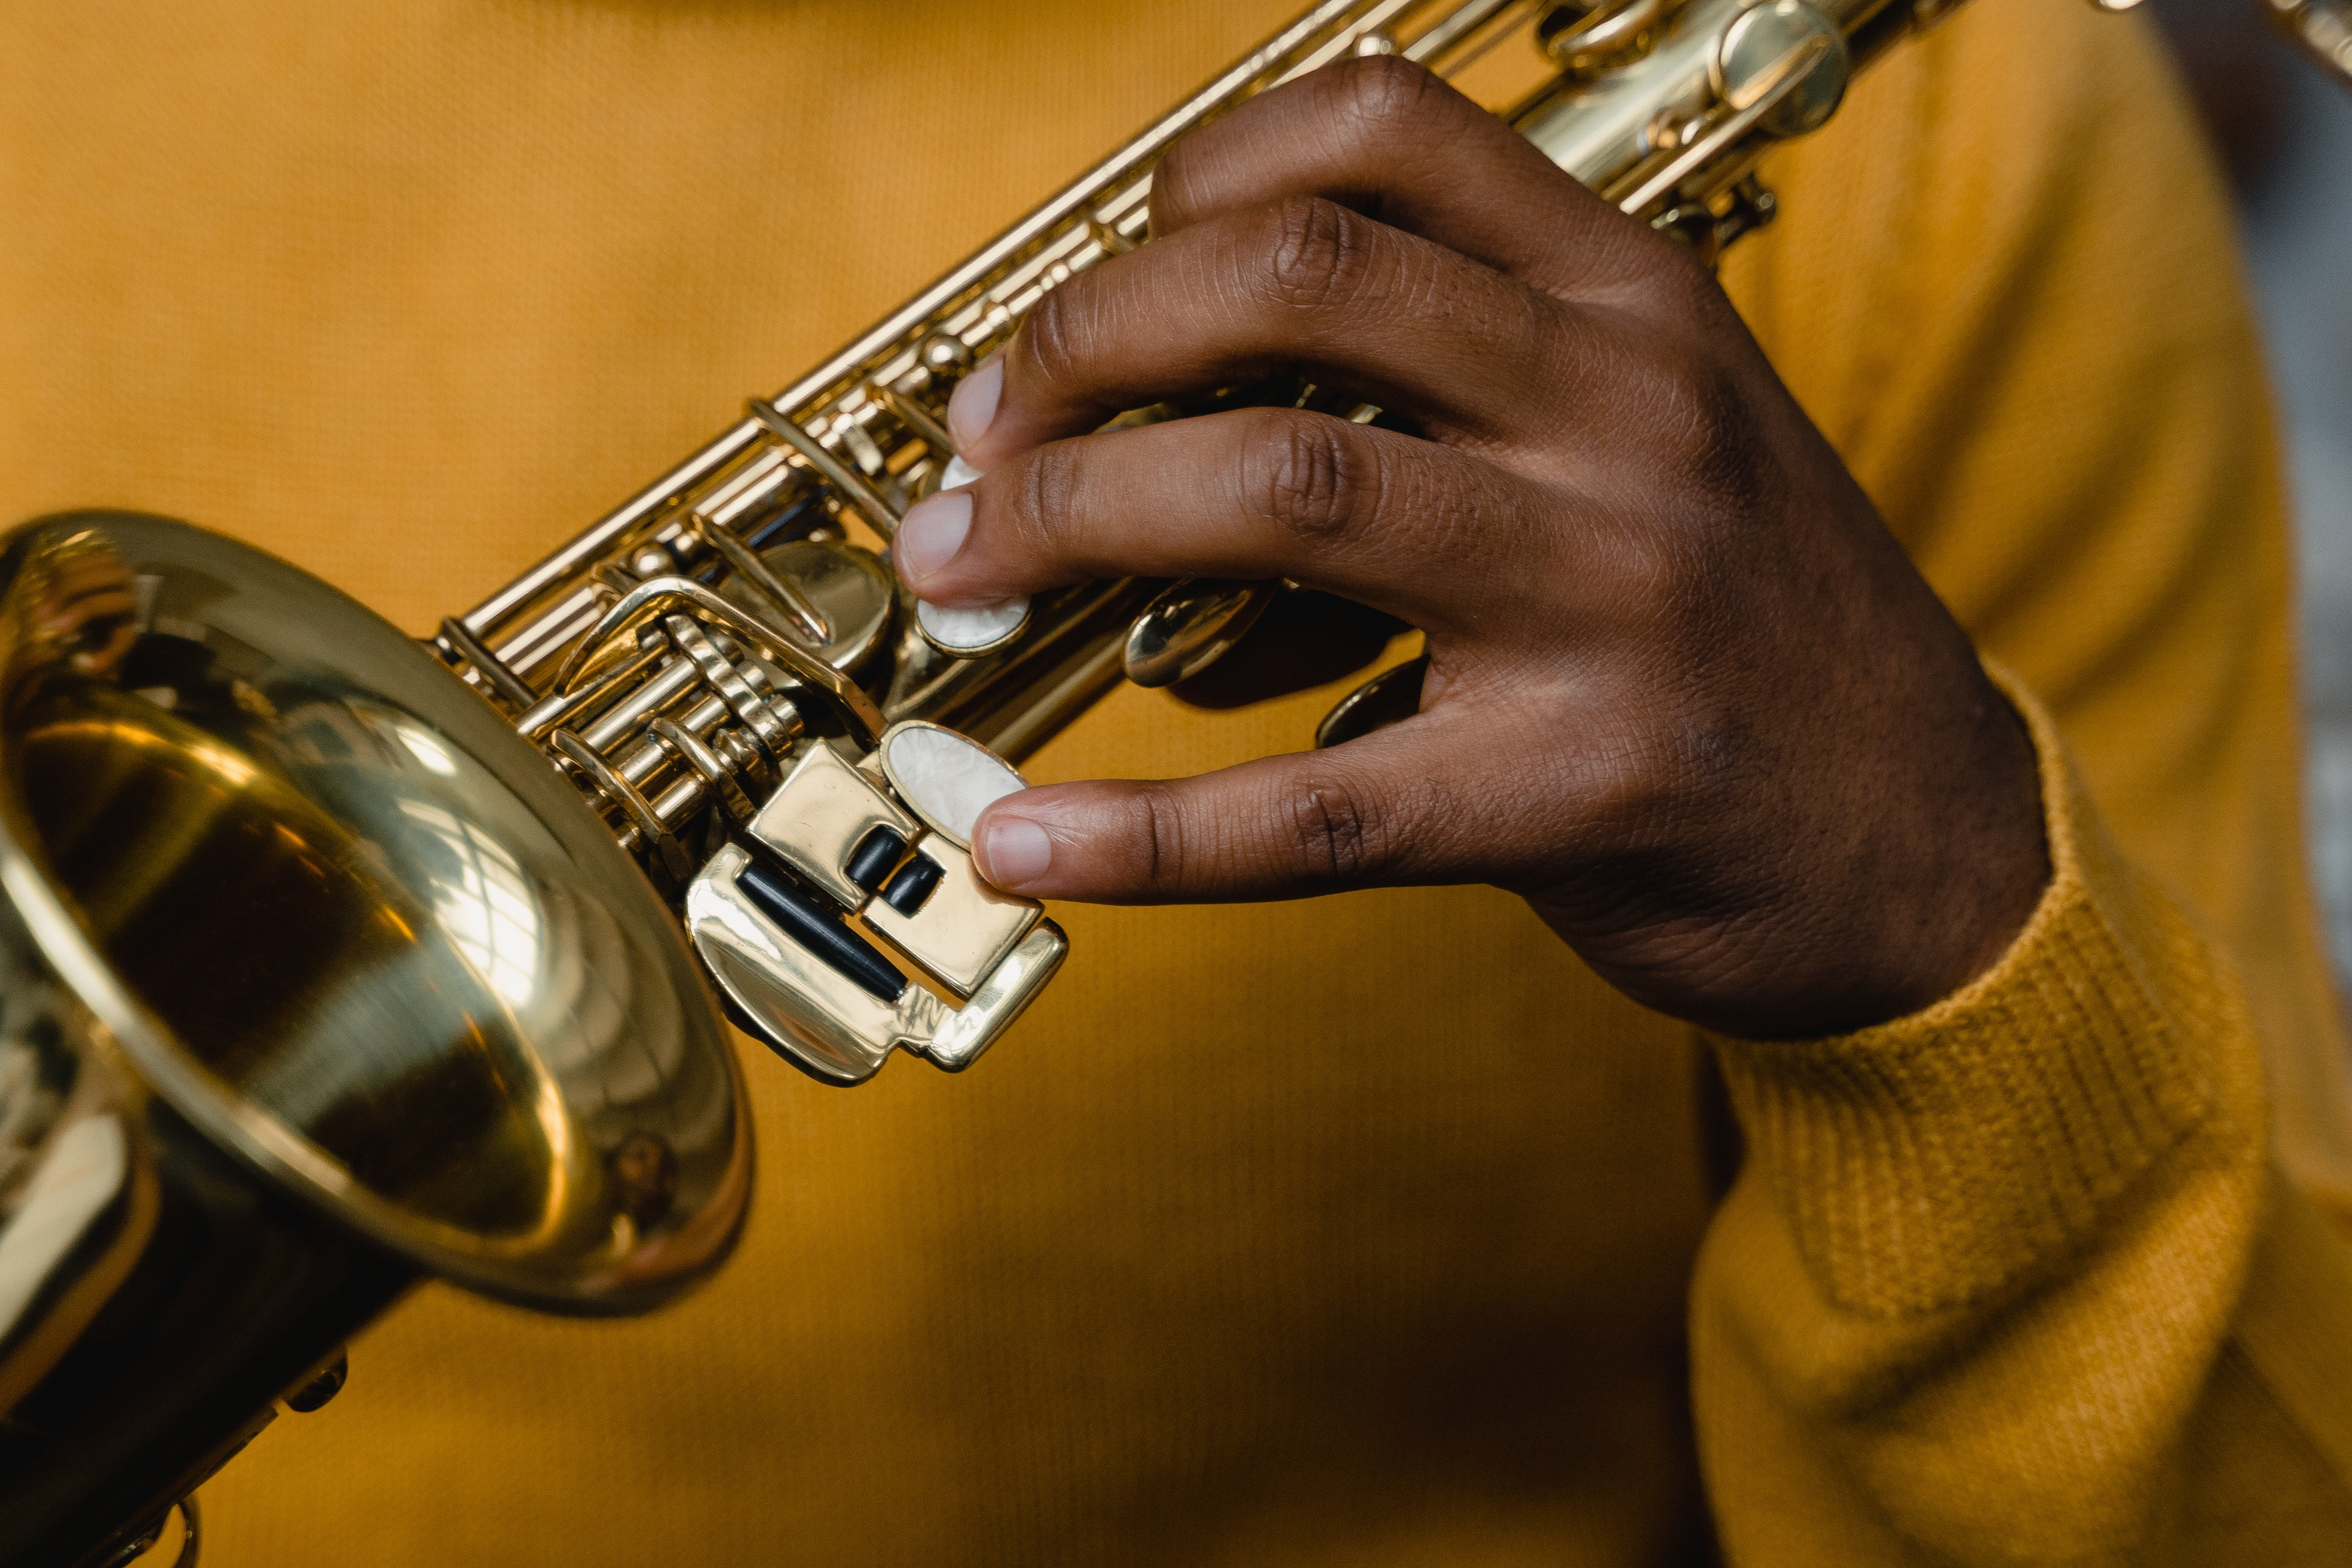 saxophone lessons near me in rapid city sd